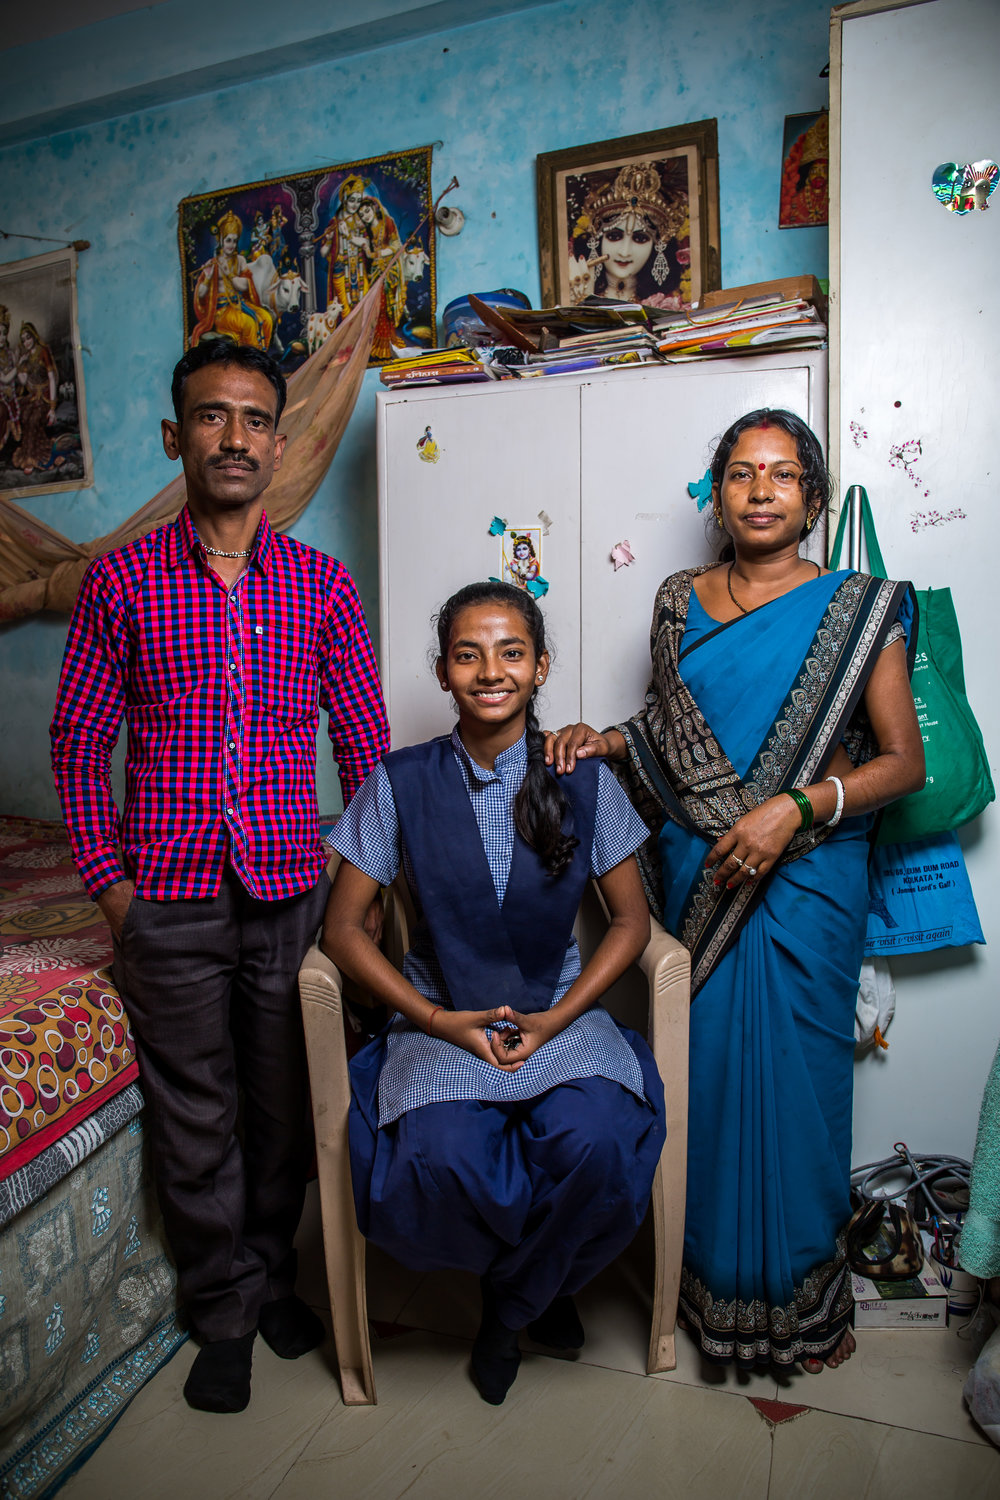 14 year old Rani and her parents inside their one room home